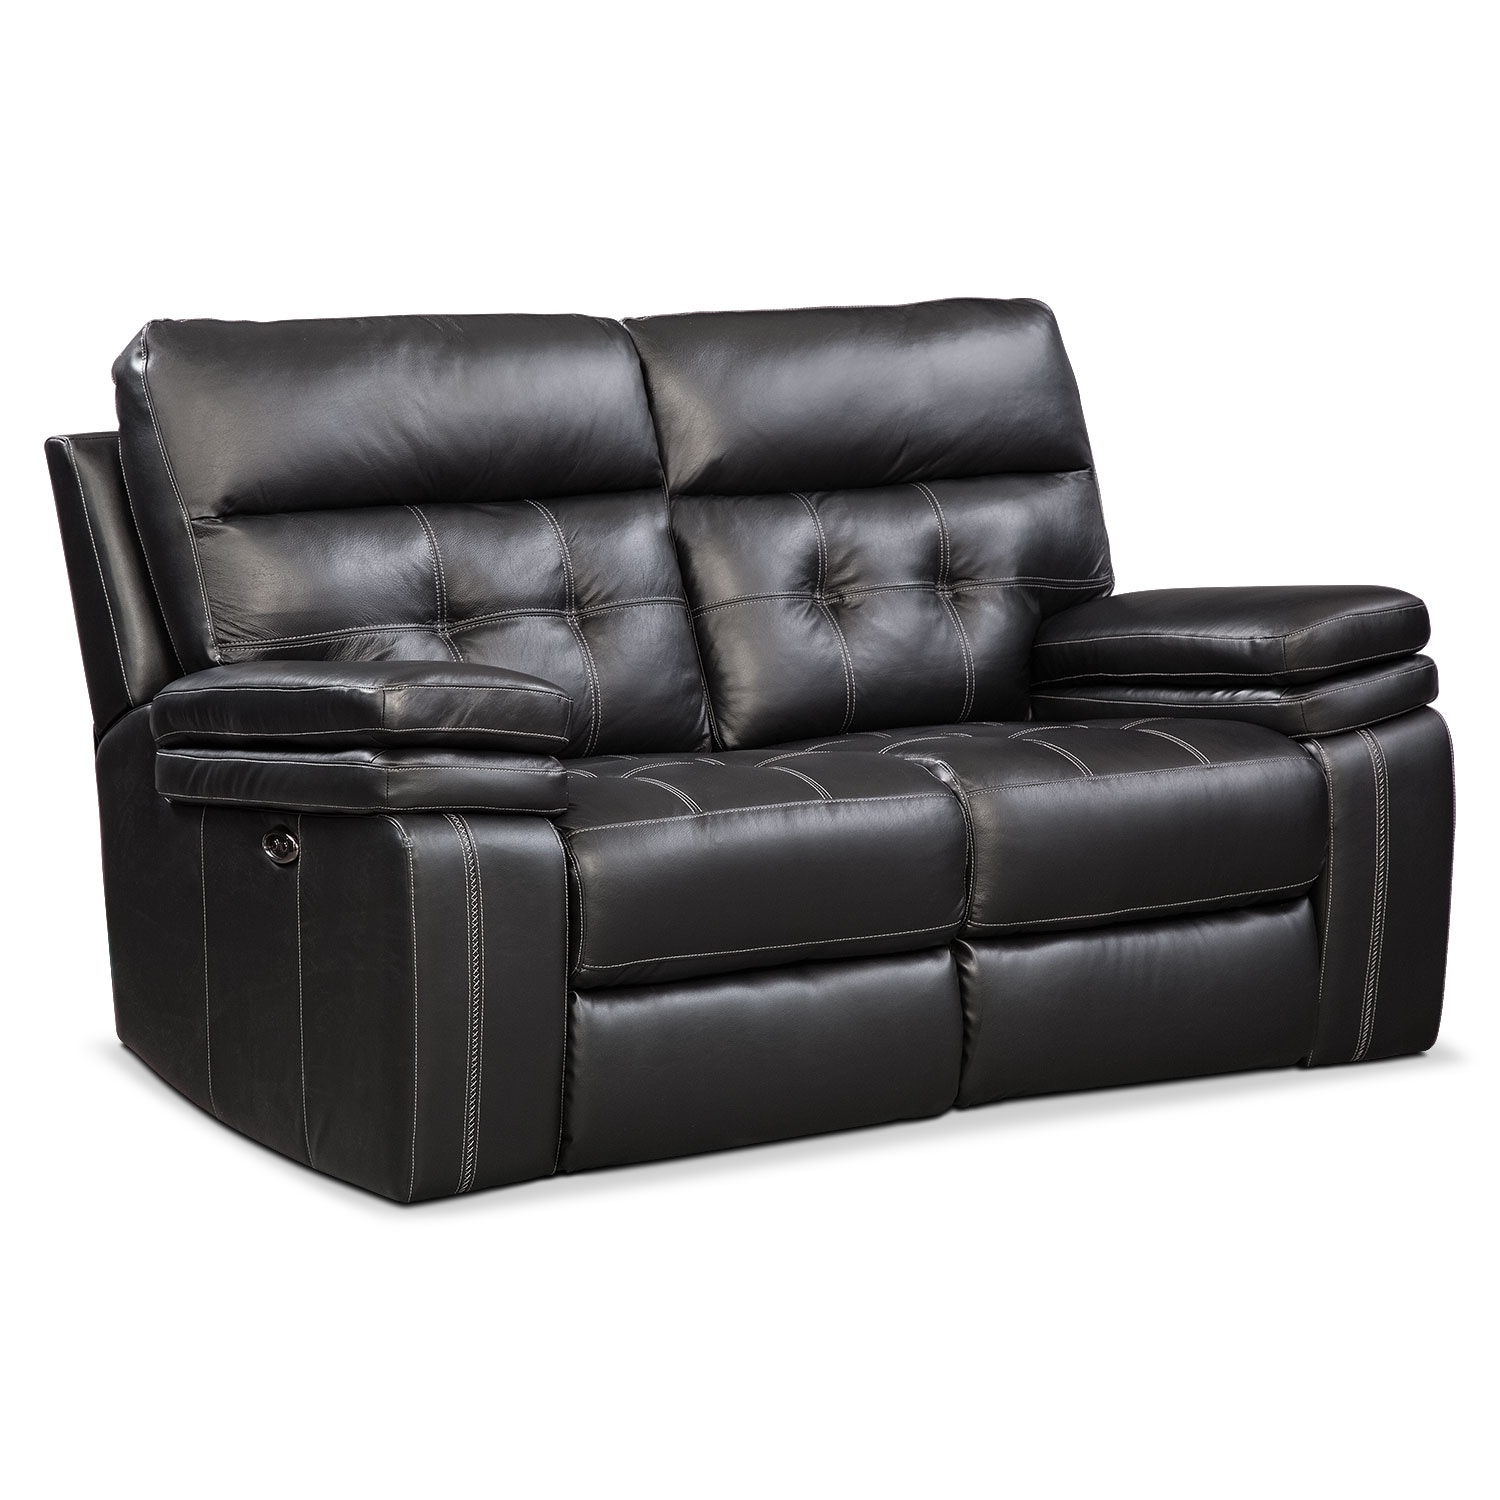 Brisco Power Reclining Loveseat - Black   Value City Furniture and